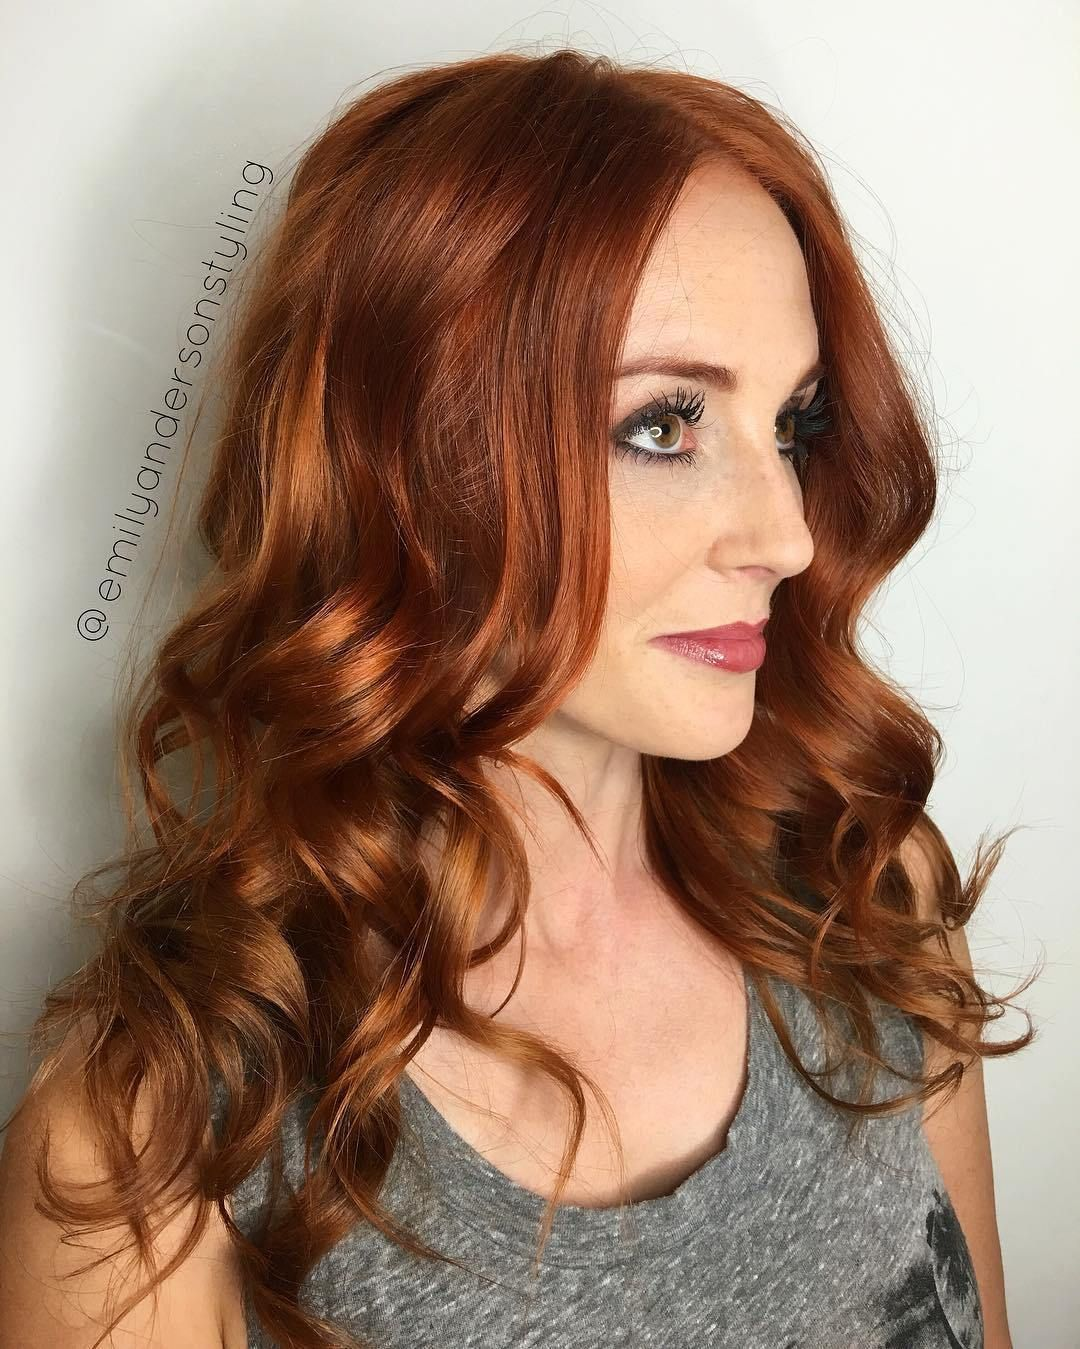 Red Hair Color This Is How Beautiful It Can Be Red Hairstyle Light Auburn Hair Color Pale Skin Hair Color Hair Color Auburn